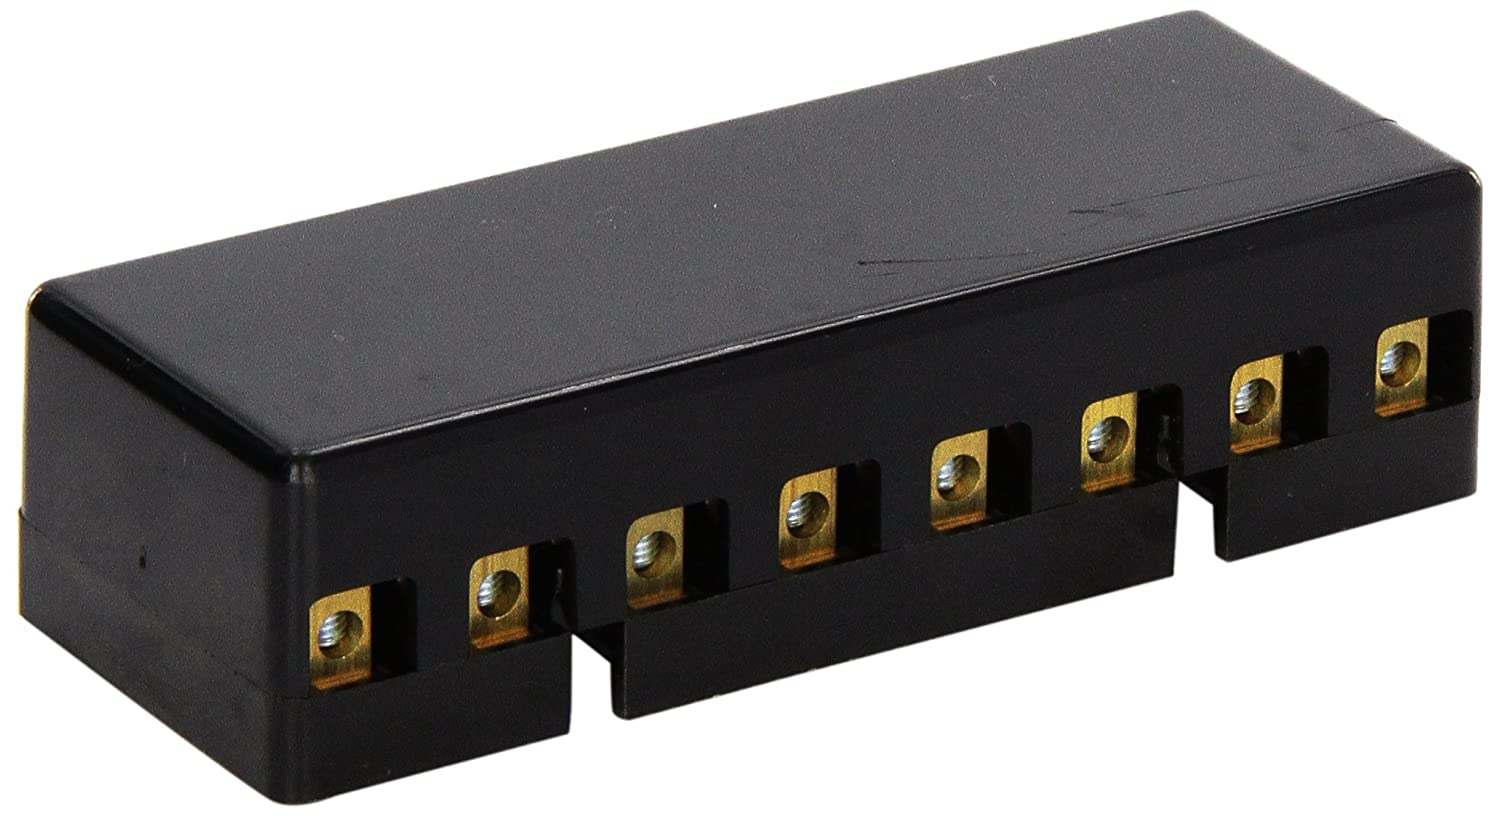 85%OFF HELLA 002290001 8A Fuse Box with 8 Screw Terminals